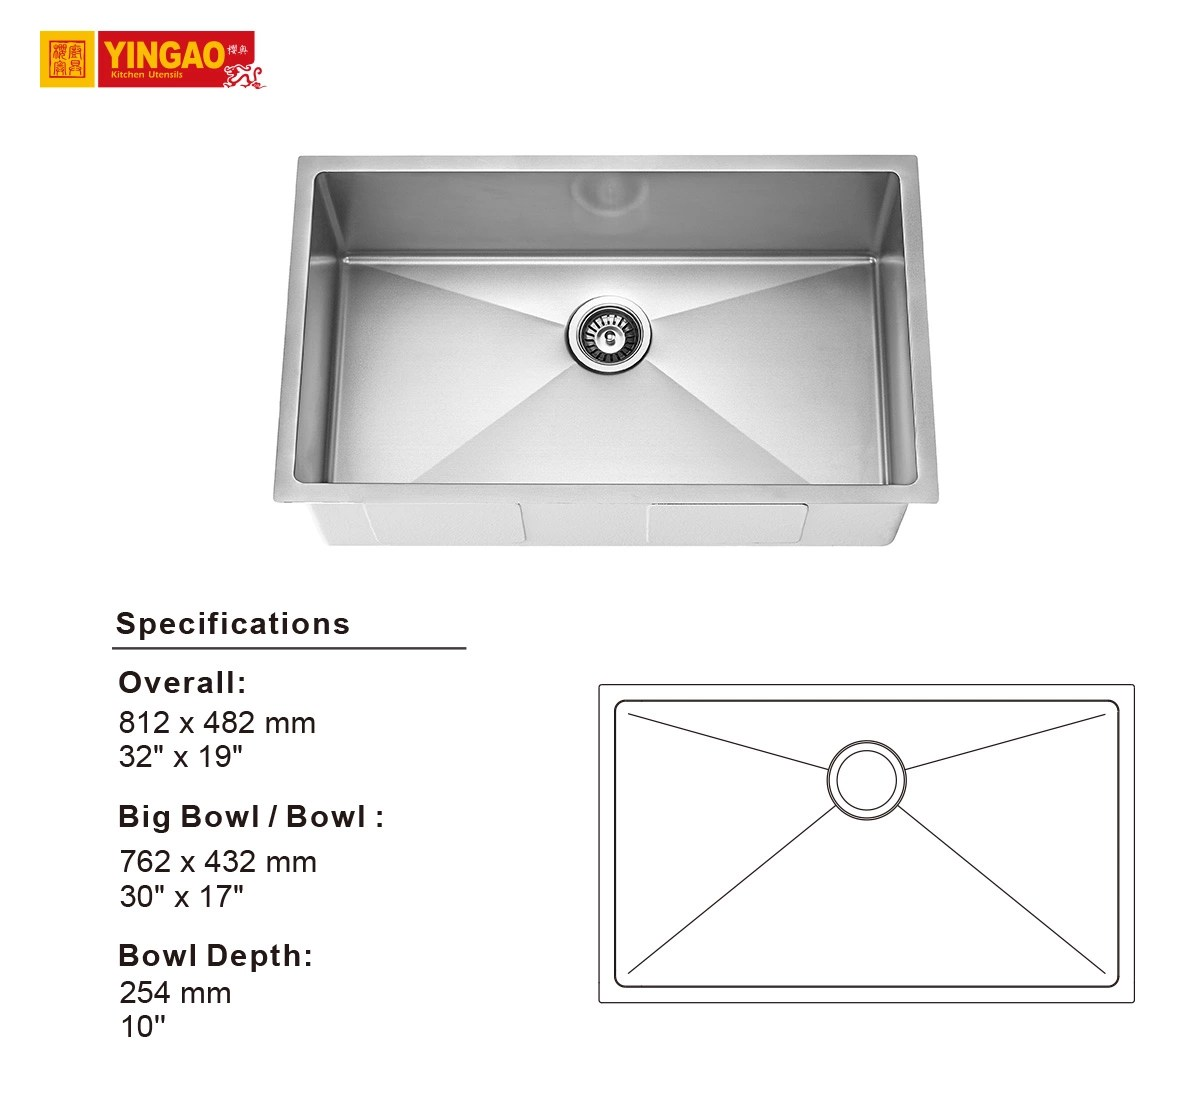 standard size flexible stainless steel sus 304 single bowl kitchen sink view rv sinks oem product details from guangdong yingao kitchen utensils